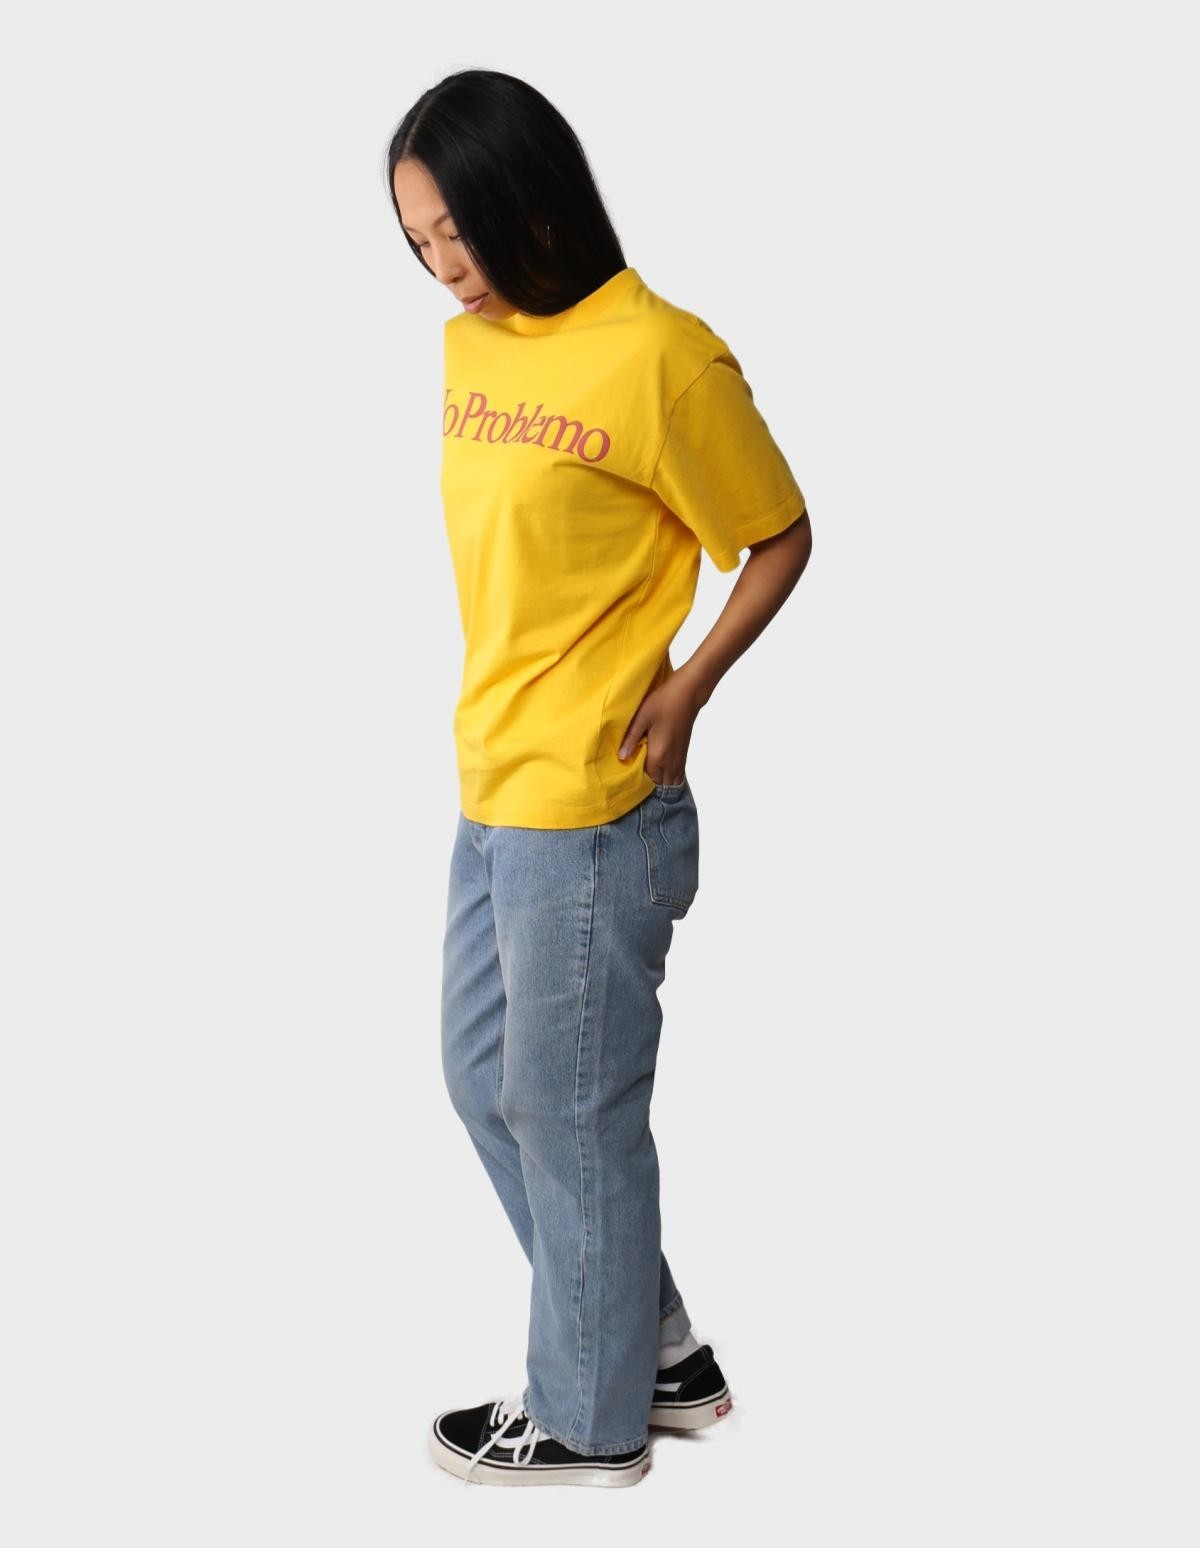 Aries Arise No Problemo SS Tee in Yellow